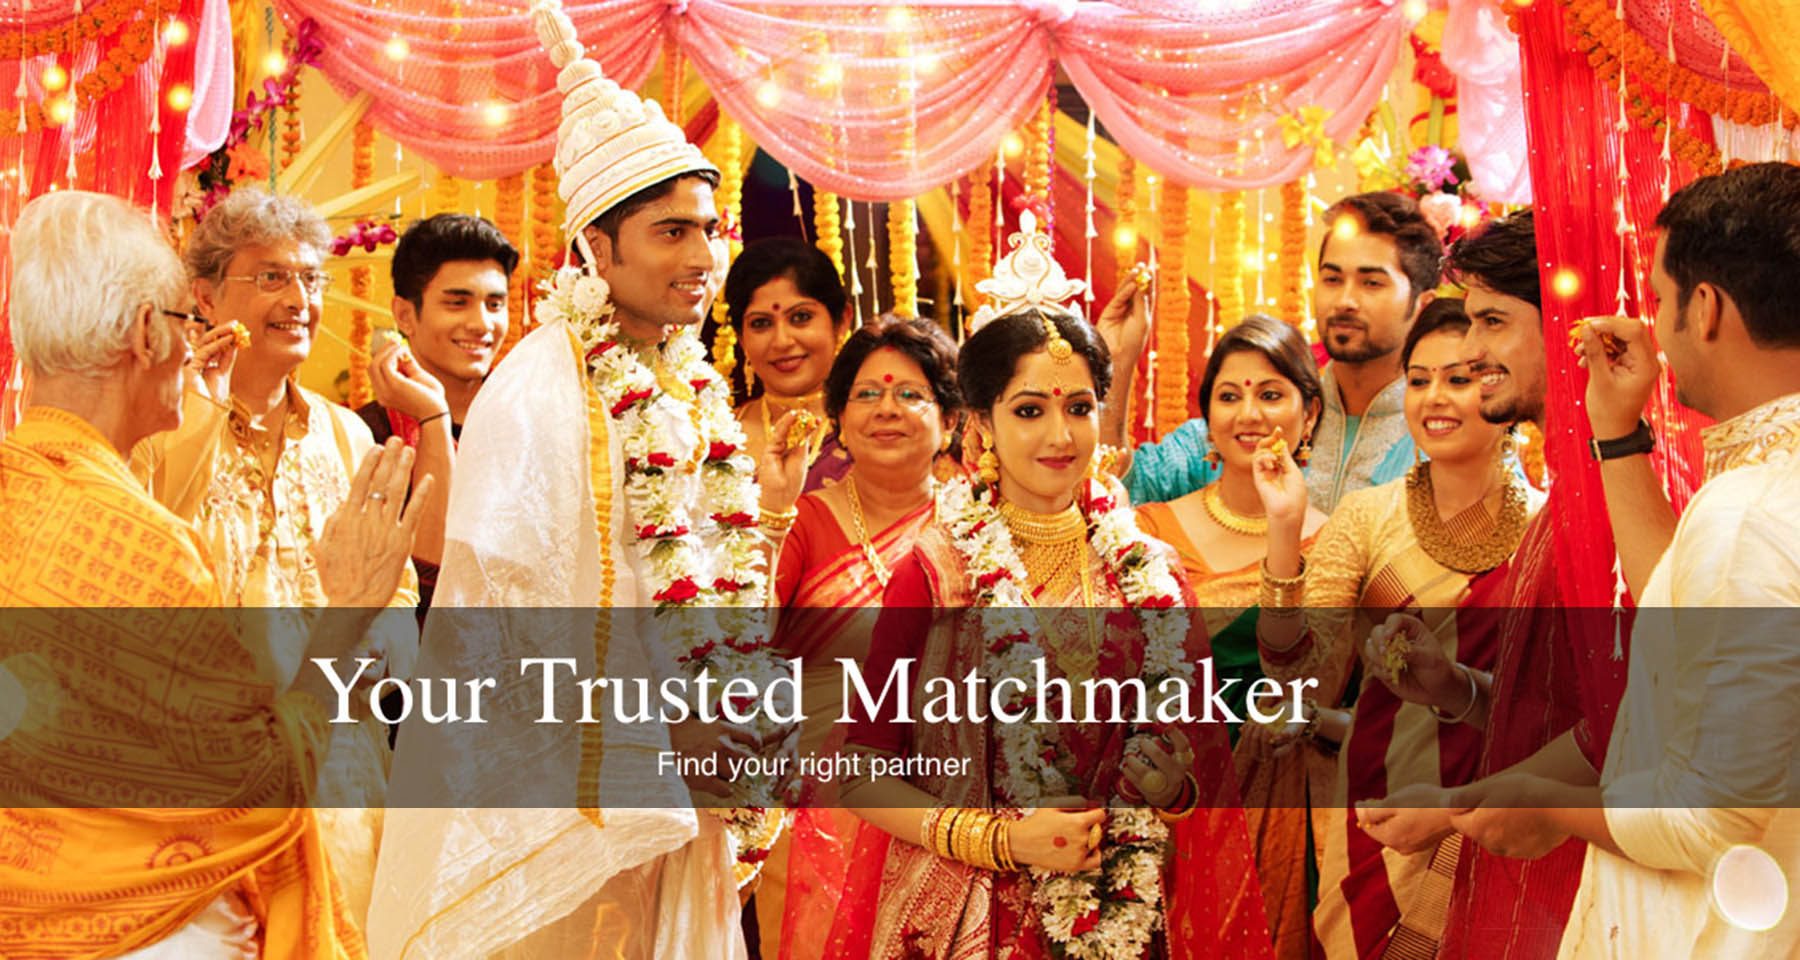 ABP Group's online matchmaking portal sets trend with tougher security measures